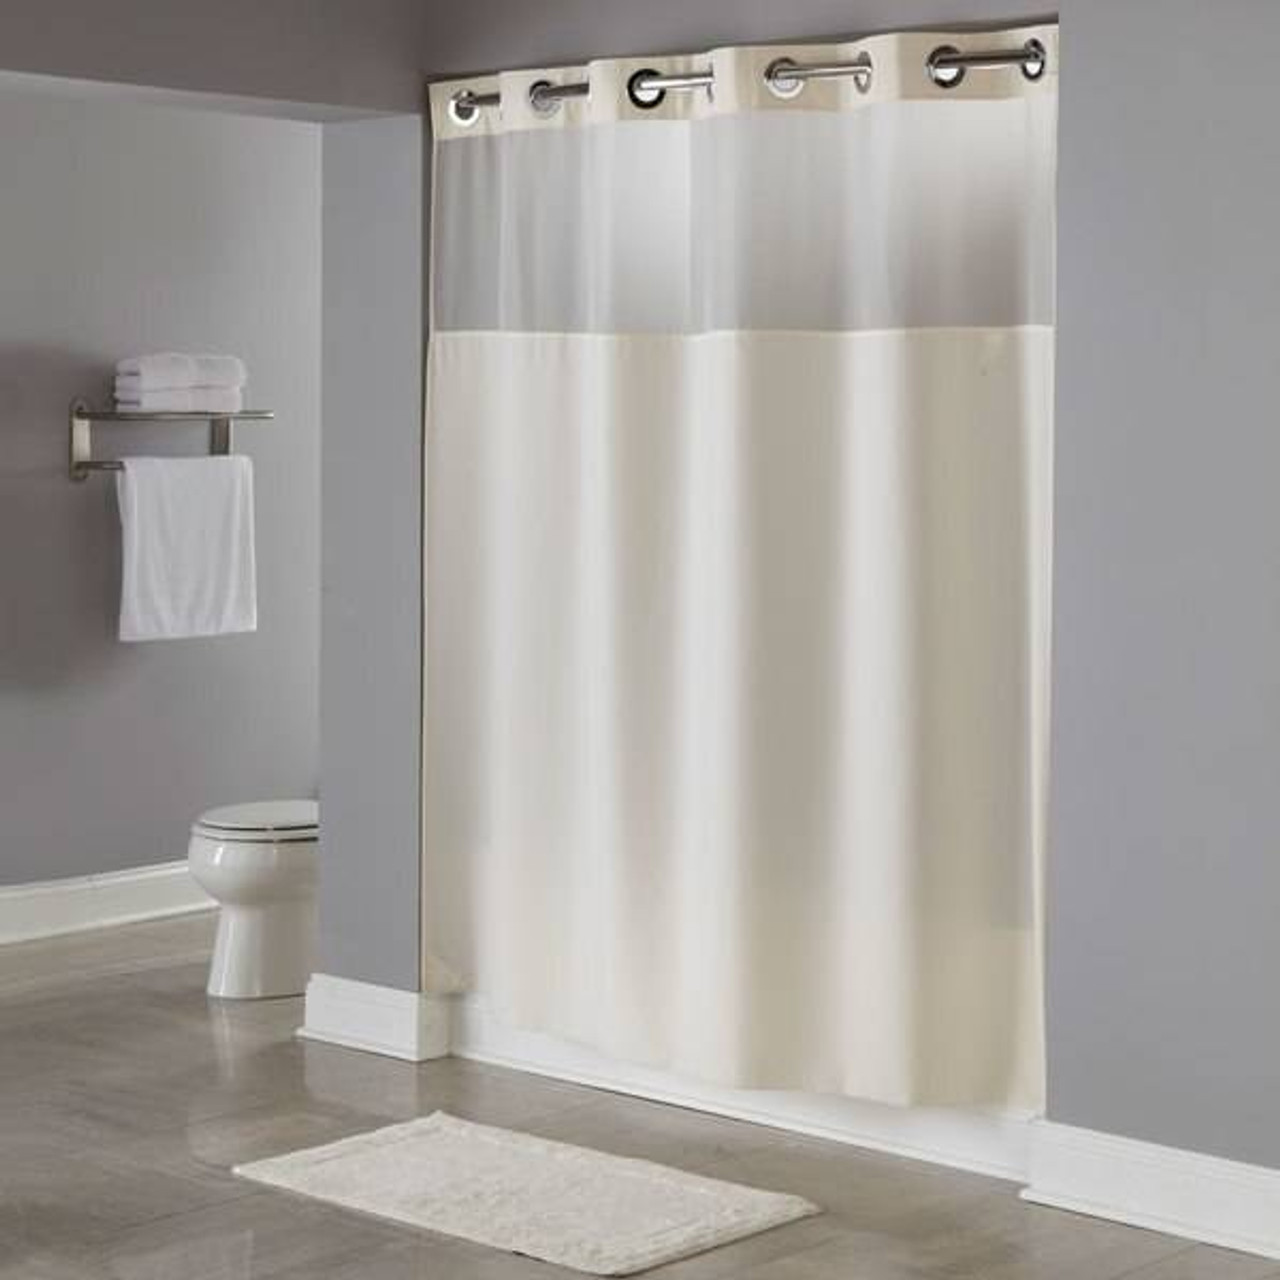 Focus Product Group Illusion or Hookless Shower Curtain or Pack of 12